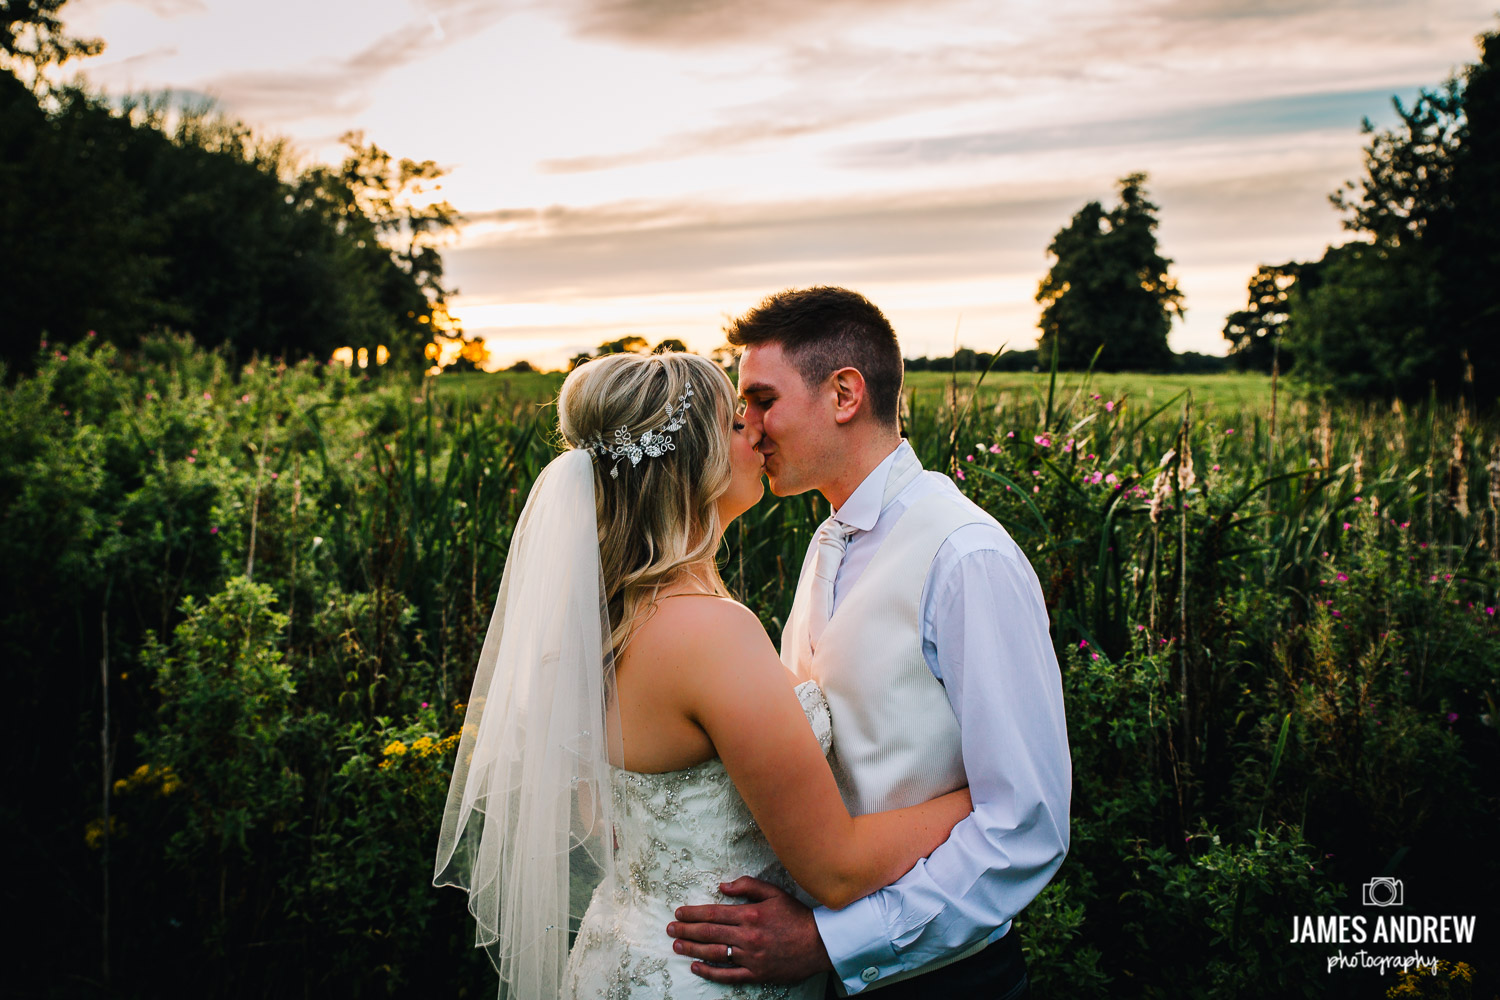 Best wedding photographer Staffordshire